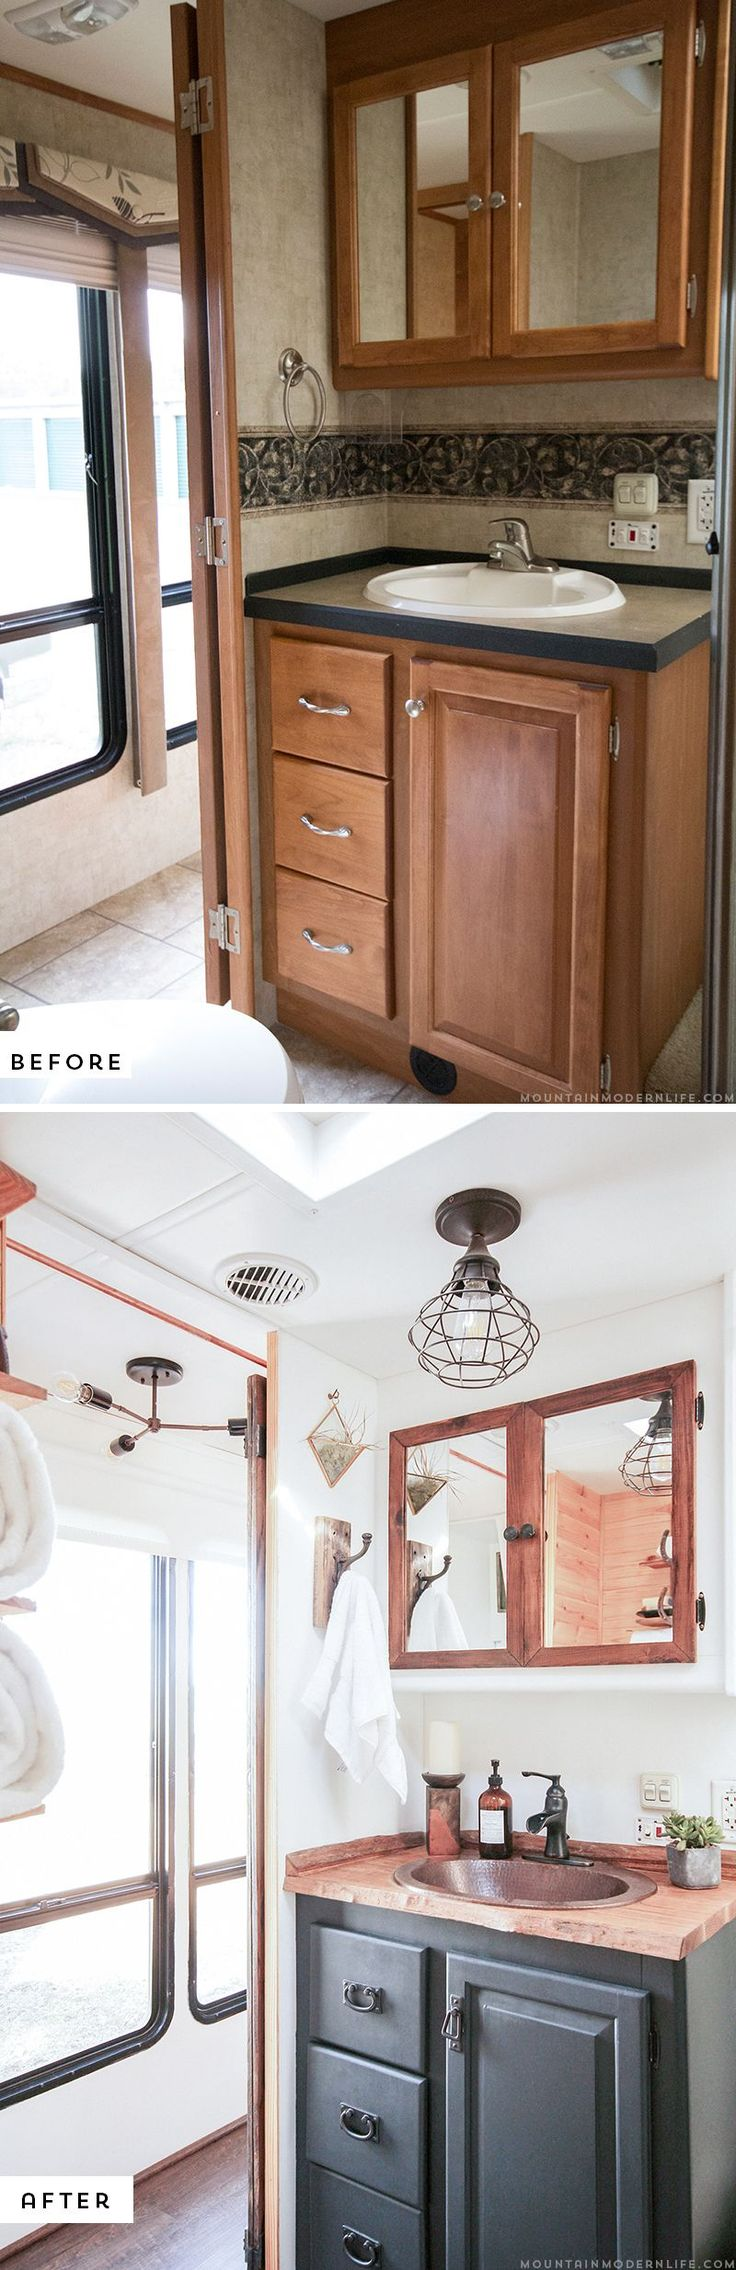 Cool 25 Amazing RV  Remodels You Need To See https://decoratoo.com/2017/09/20/25-amazing-rv-remodels-need-see/ Frequently, property owners are going to request applications in writing, either by snail-mail, e-mail or fax, as opposed to a telephone call. A simple one line statement that you're interested in purchasing the property from them